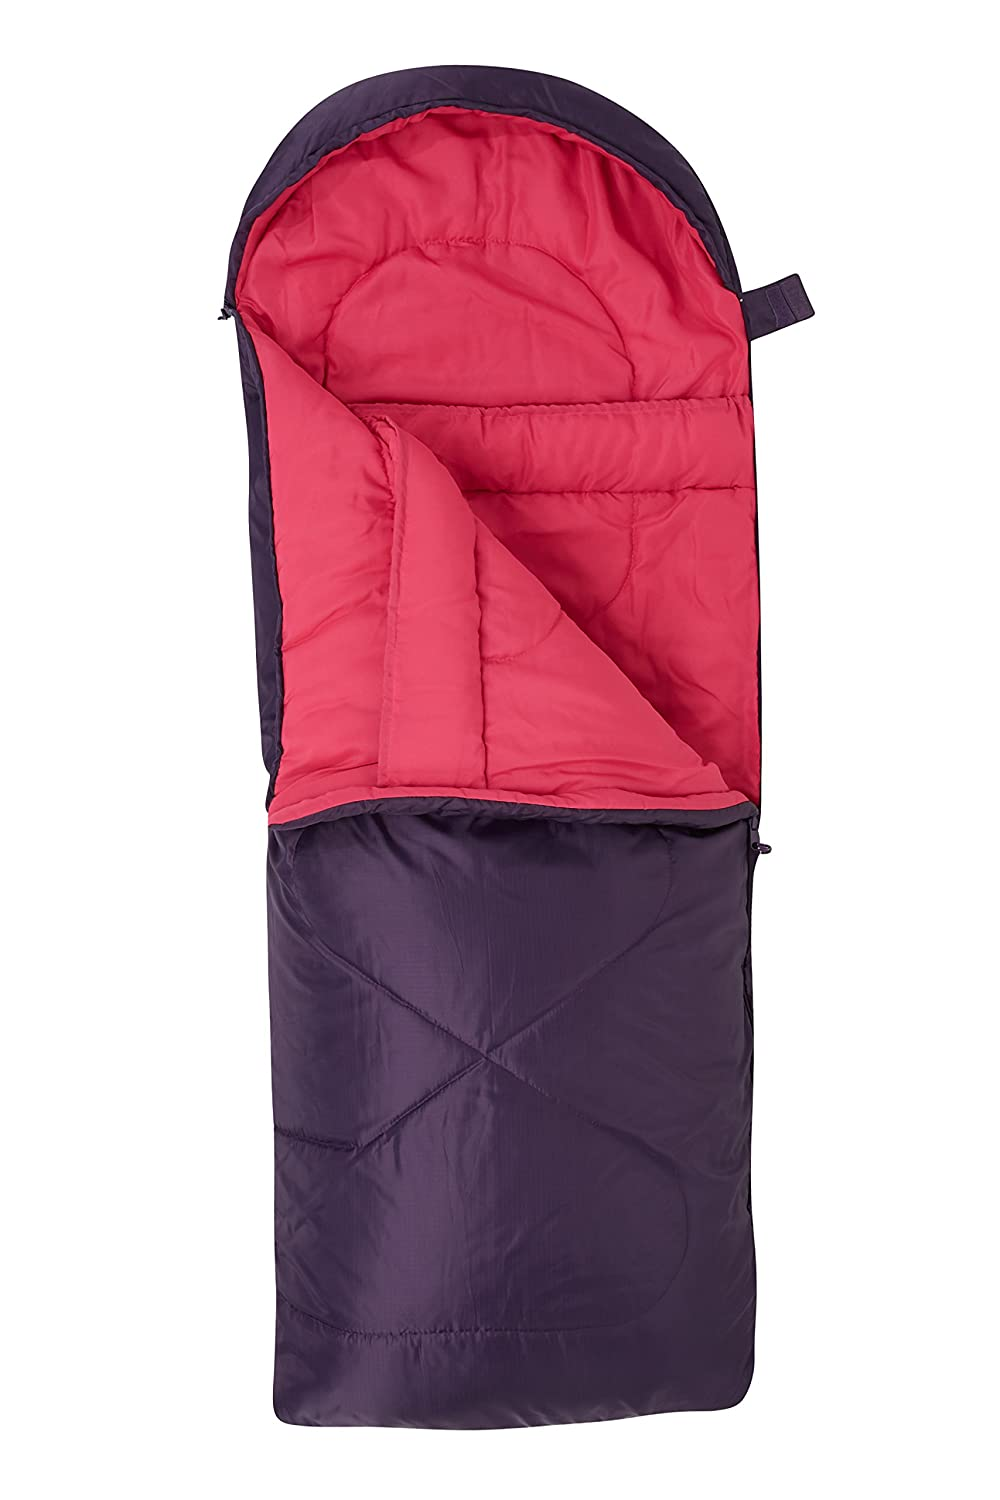 Mountain Warehouse Summit Mini Sleeping Bag – Square Camping Bag